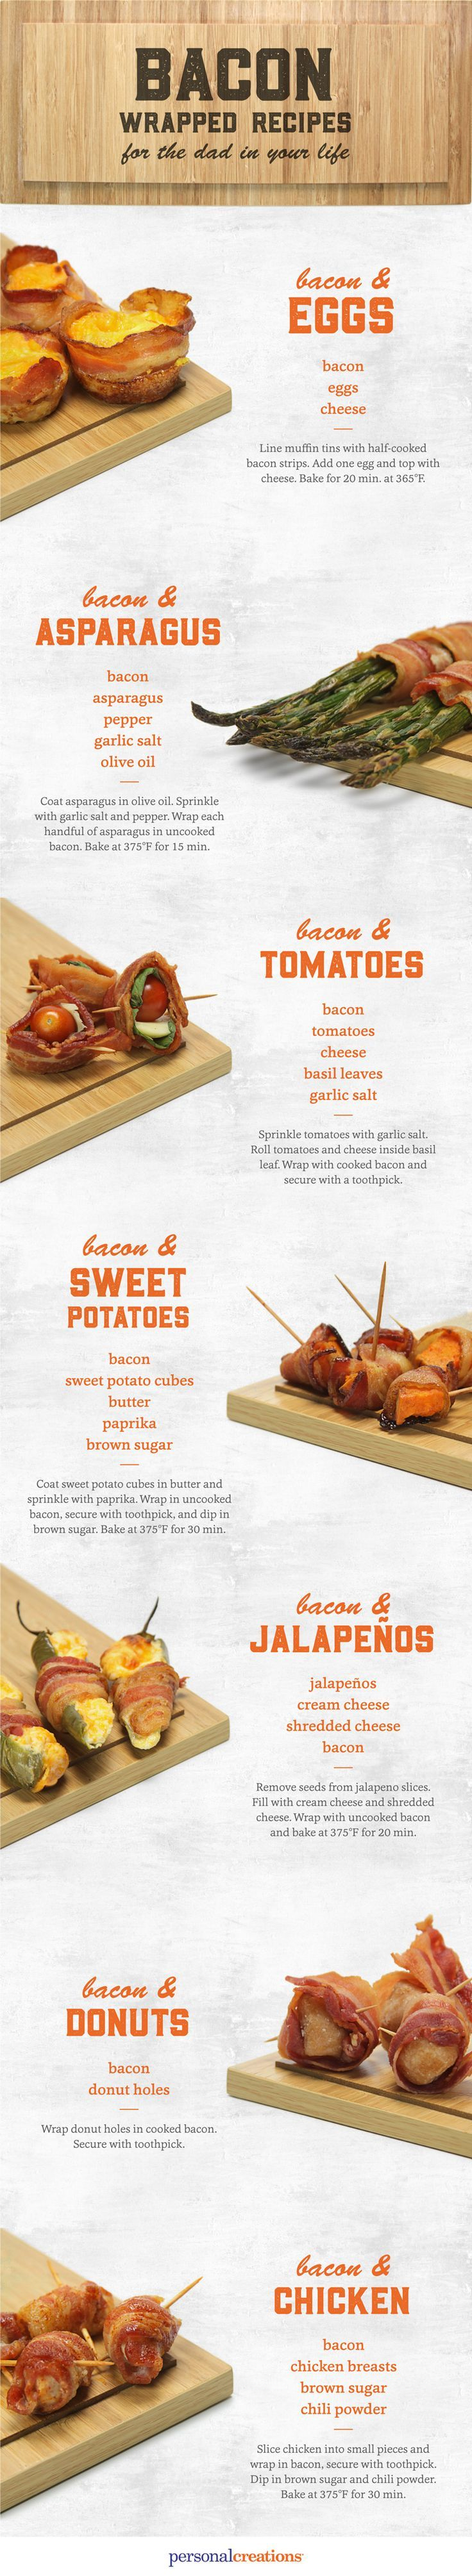 How To Make 7 Bacon Wrapped Snacks You Will Love